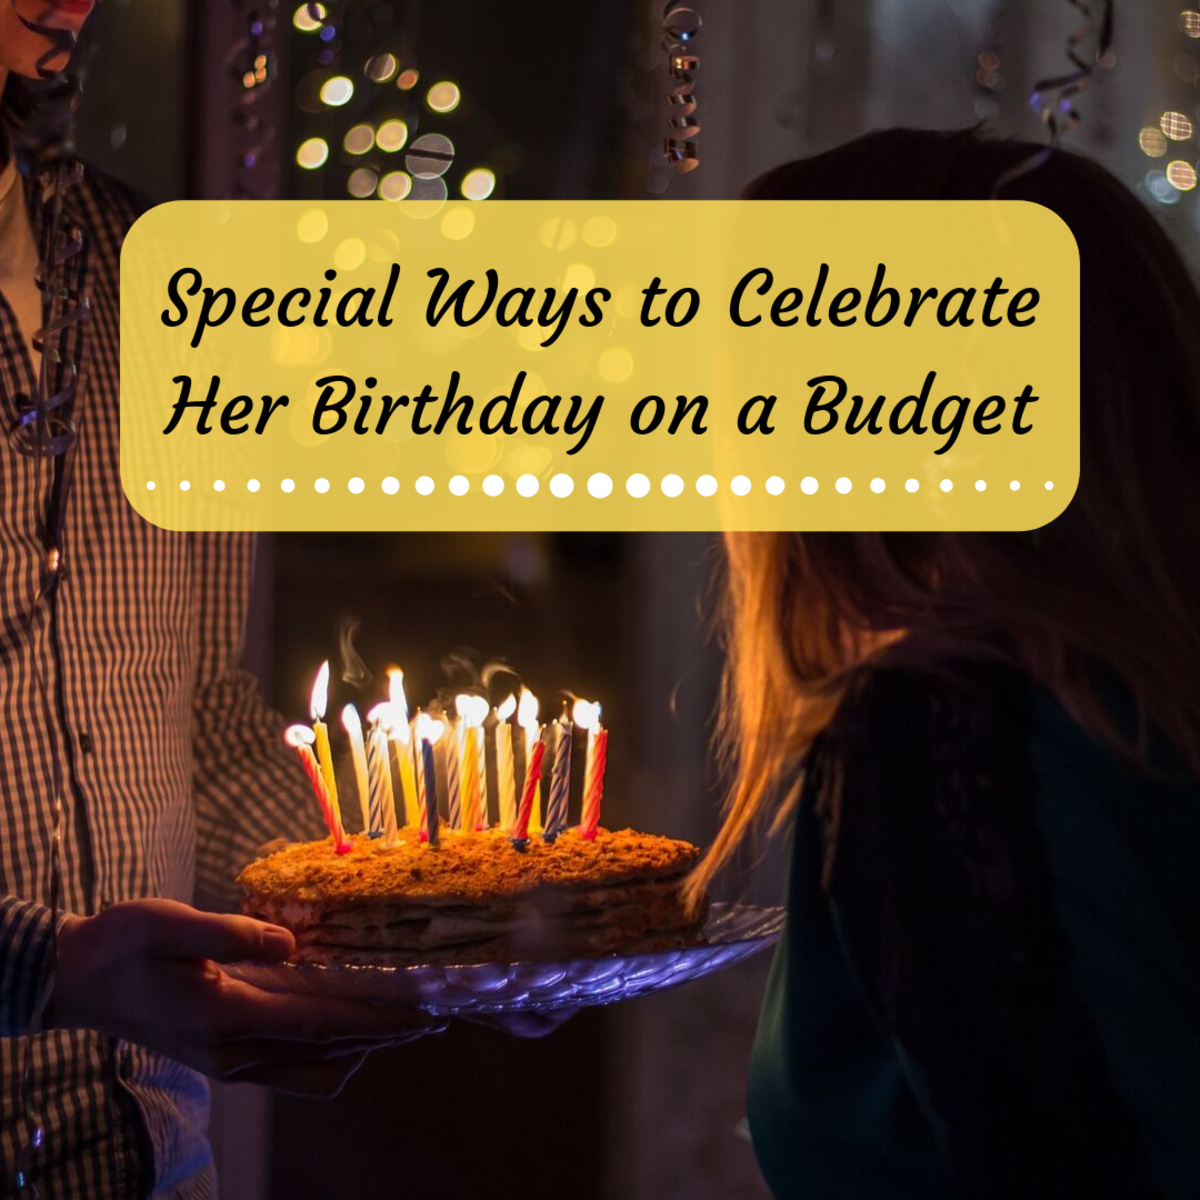 Making Your Wife or Girlfriend's Birthday Special on a Budget